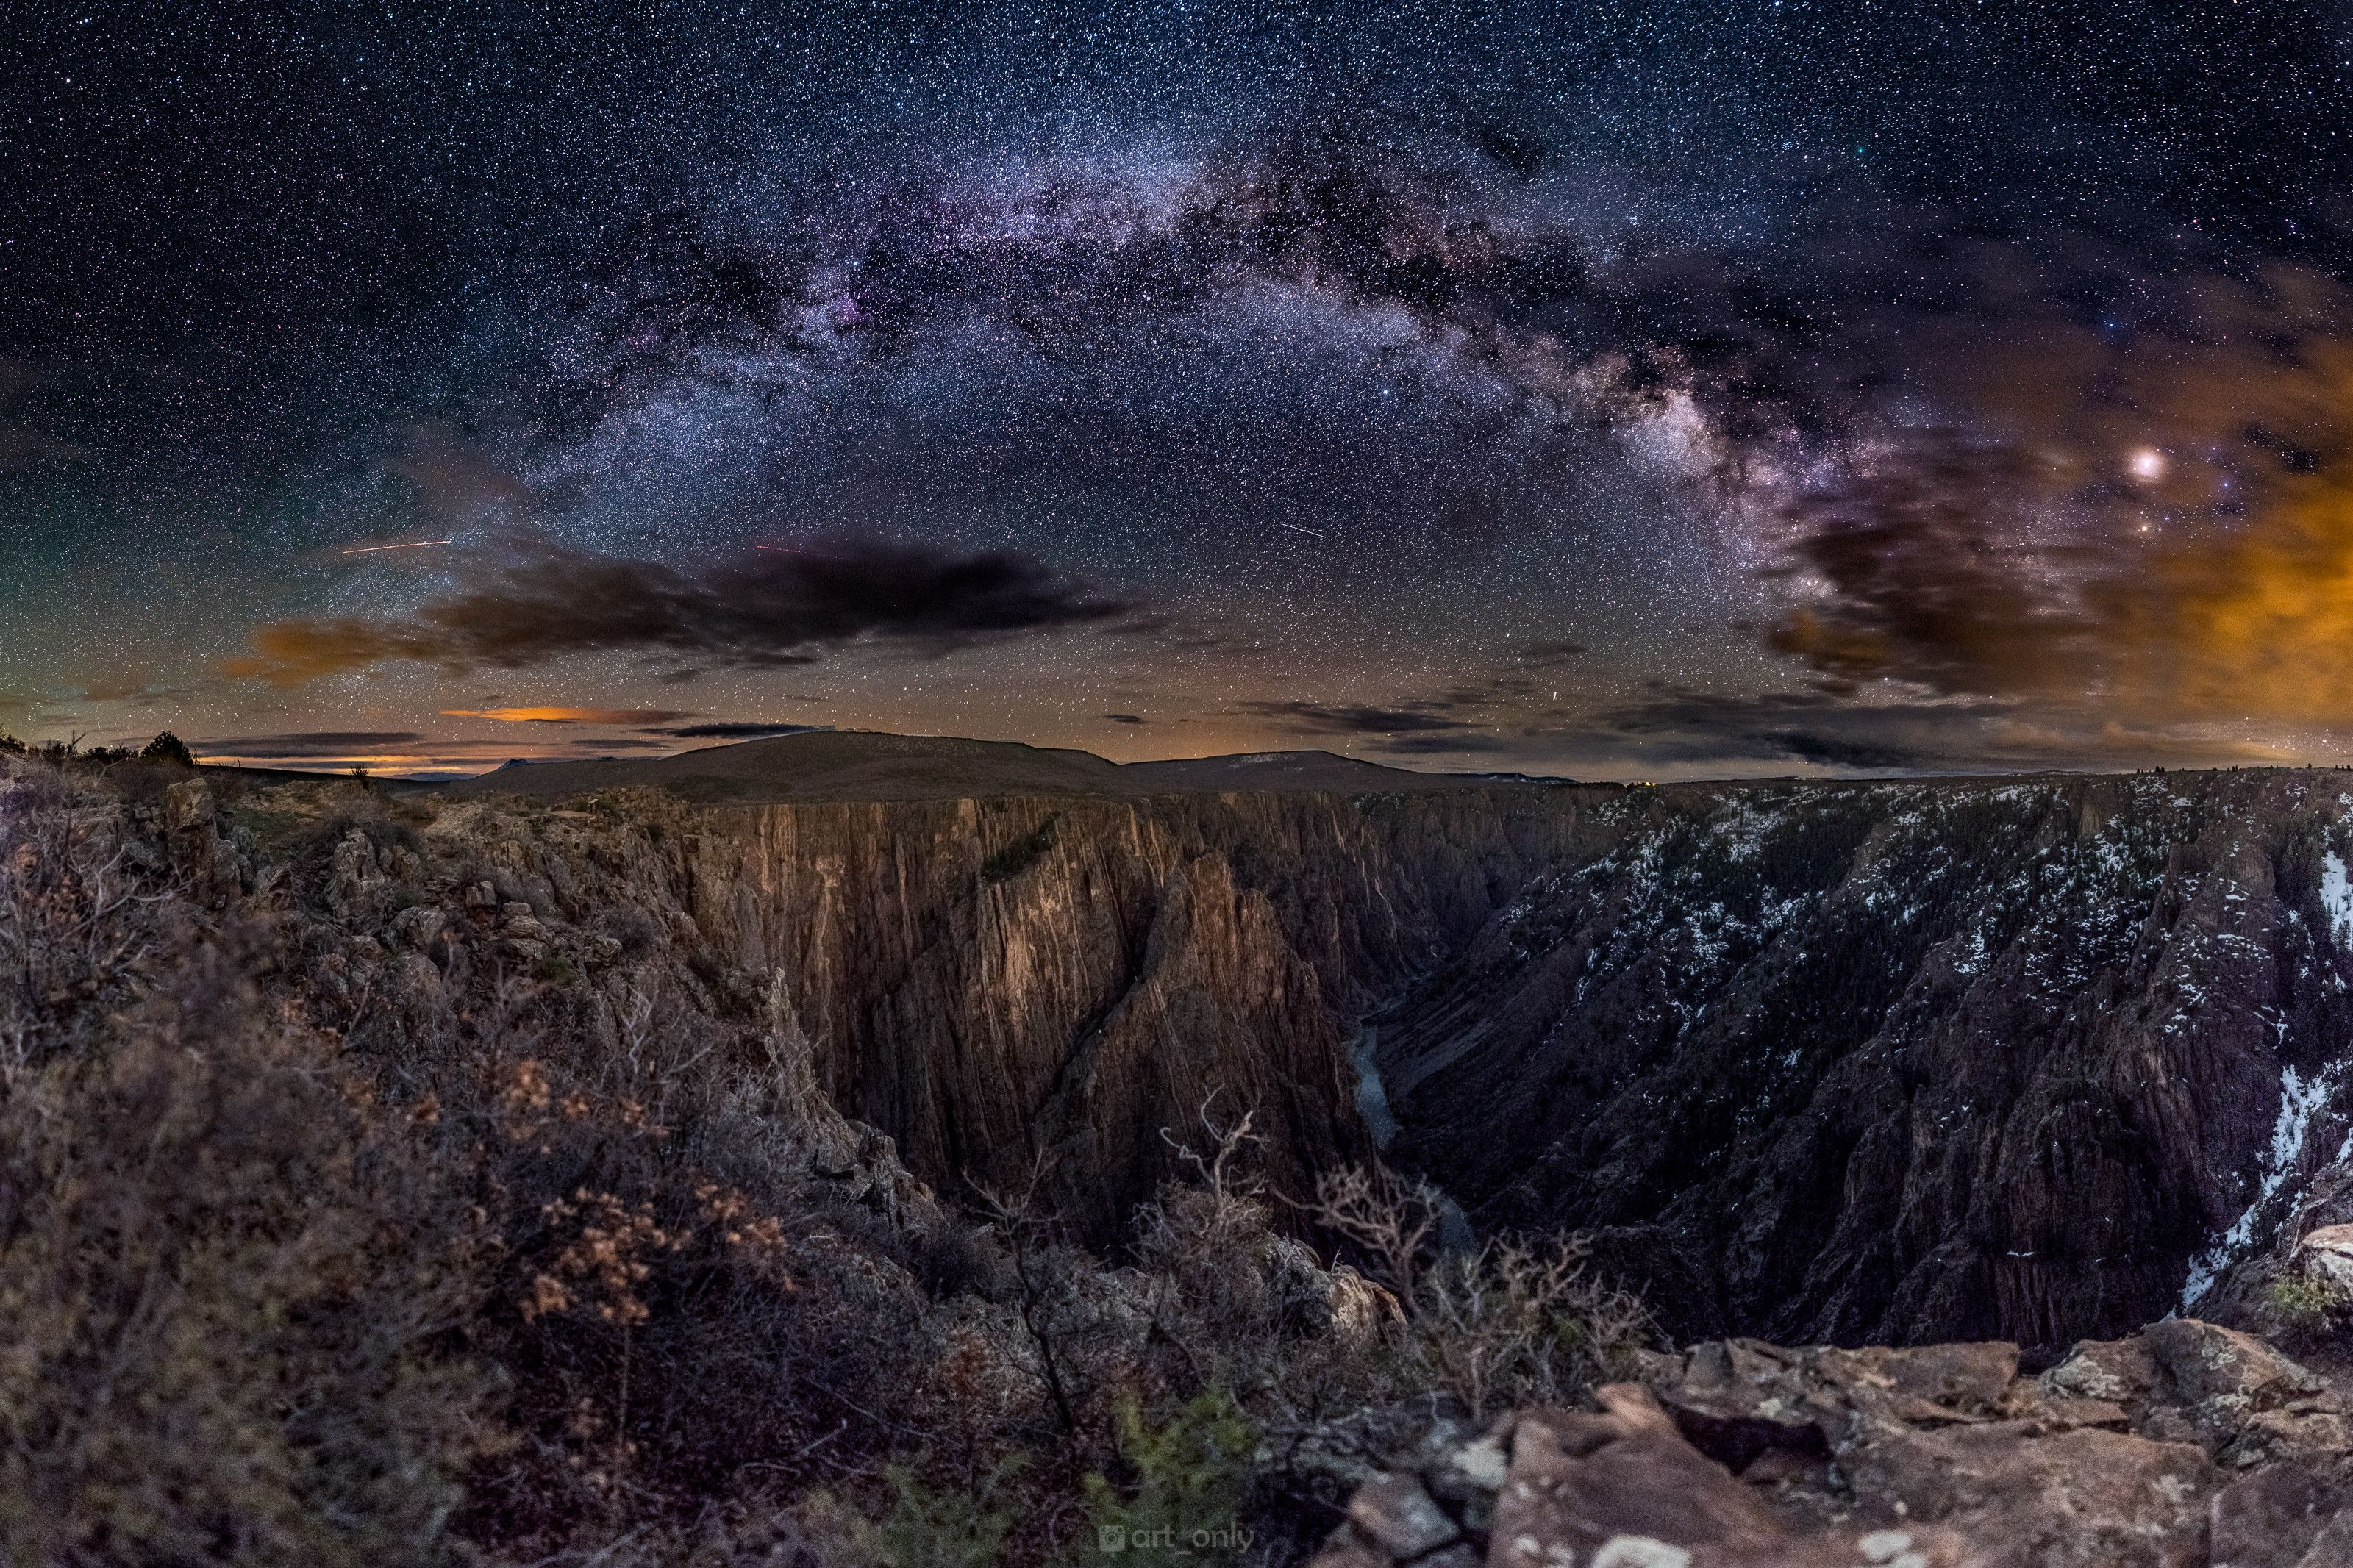 I went to see Black Canyon Of the Gunnison in Colorado at night